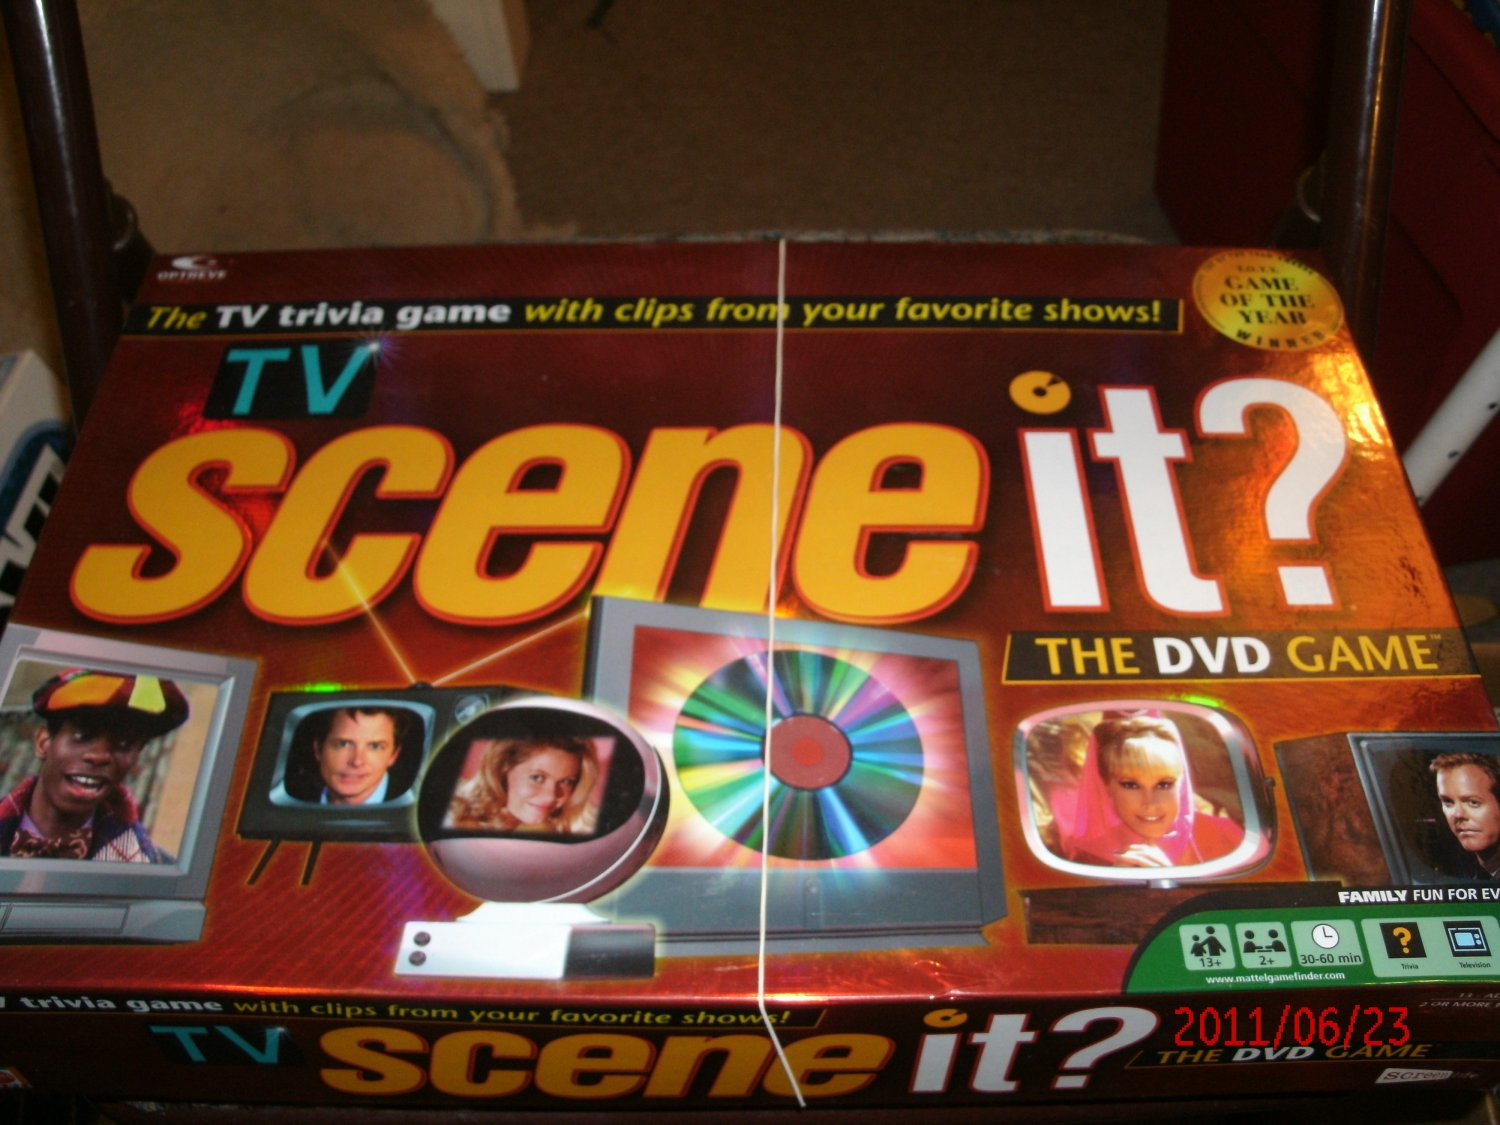 TV Scene it? DVD Trivia Game 2005 - Complete